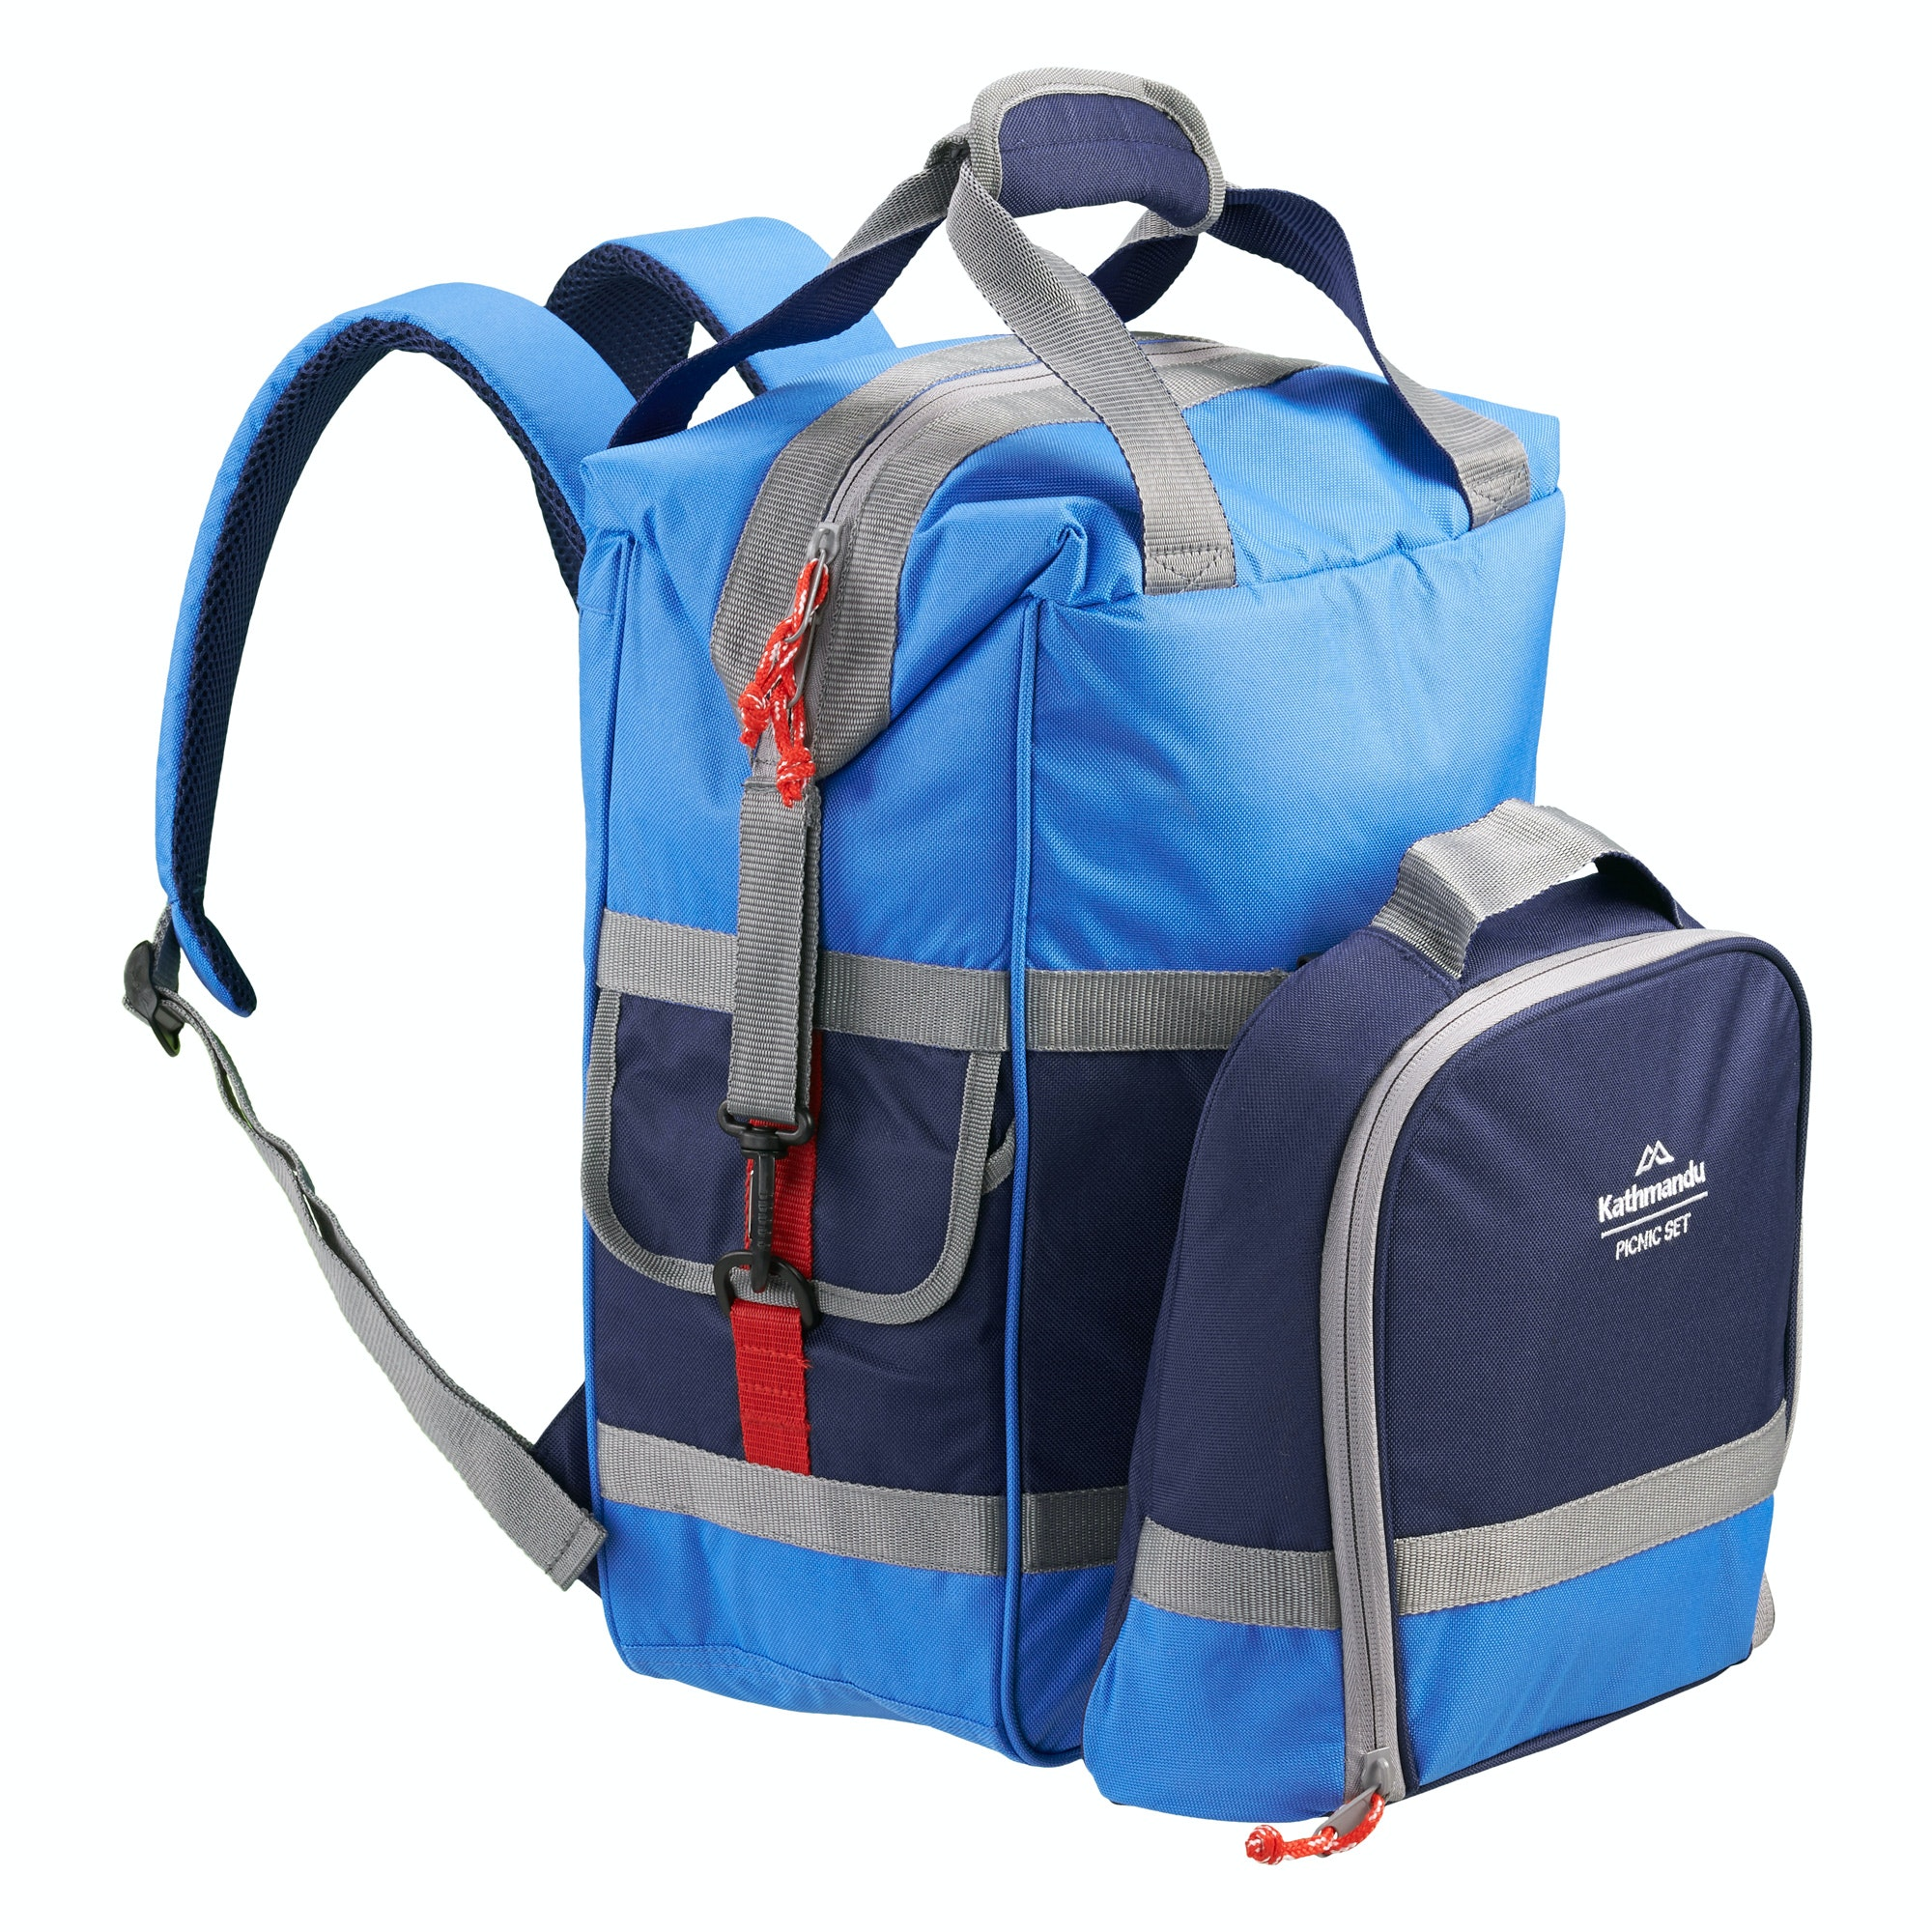 Picnic Backpack Australia Picnic Cooler 18l Backpack 4 Person Dark Navy